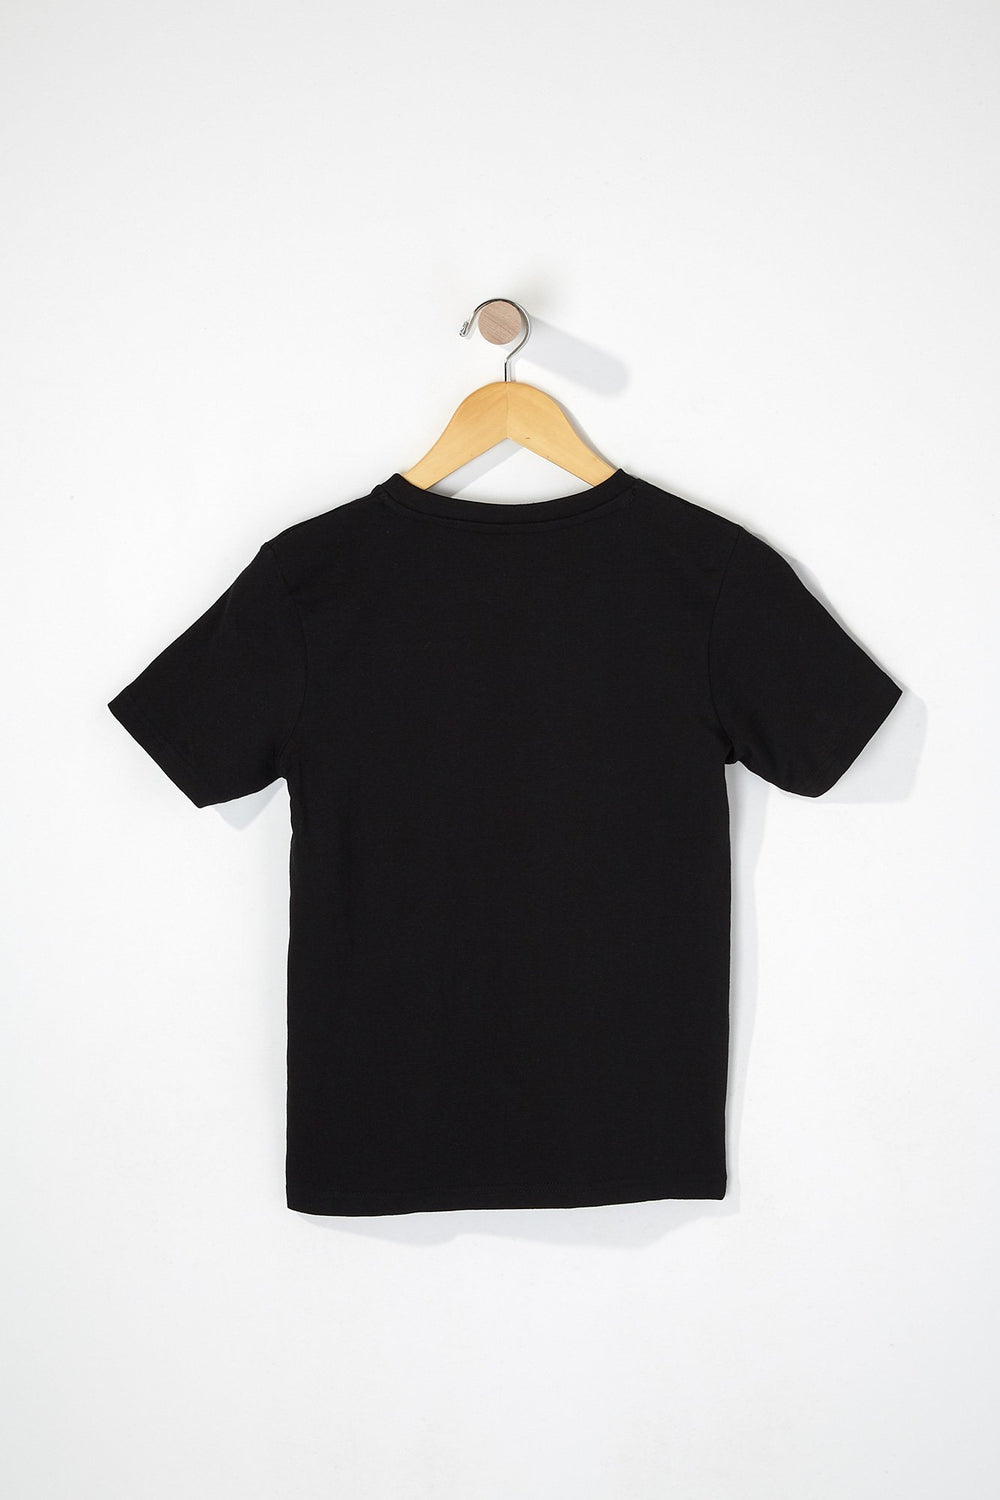 Zoo York Boys Bar Logo T-Shirt Zoo York Boys Bar Logo T-Shirt